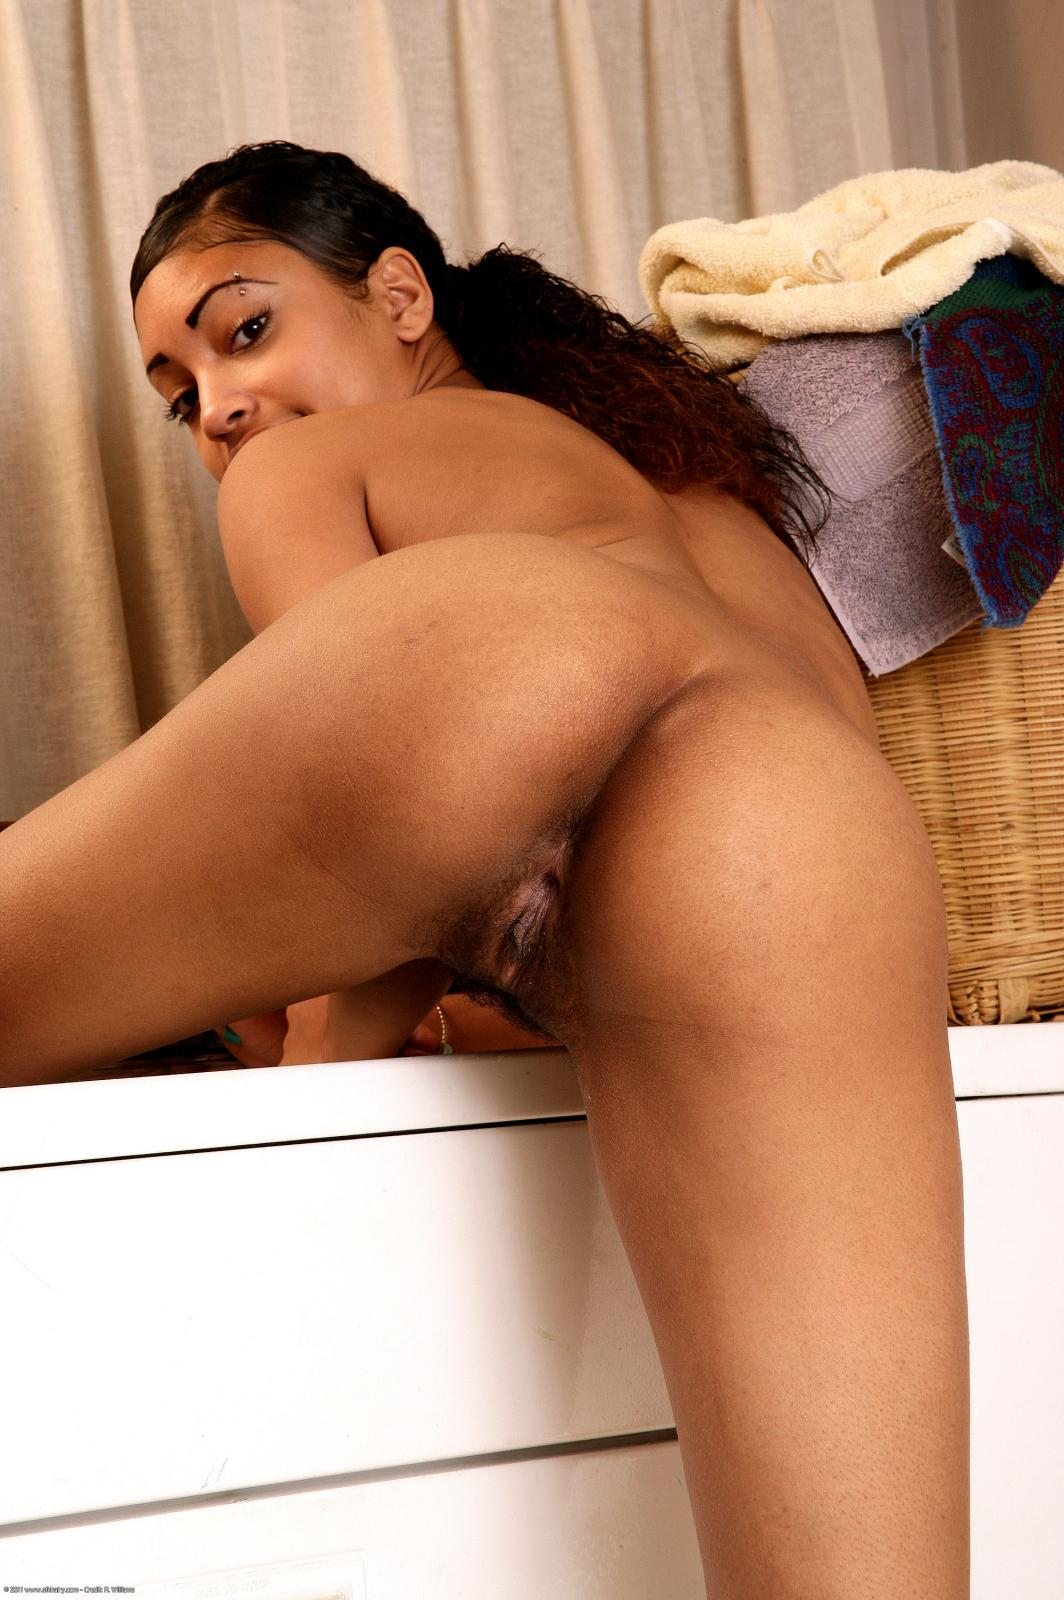 Young nude black girl spreading